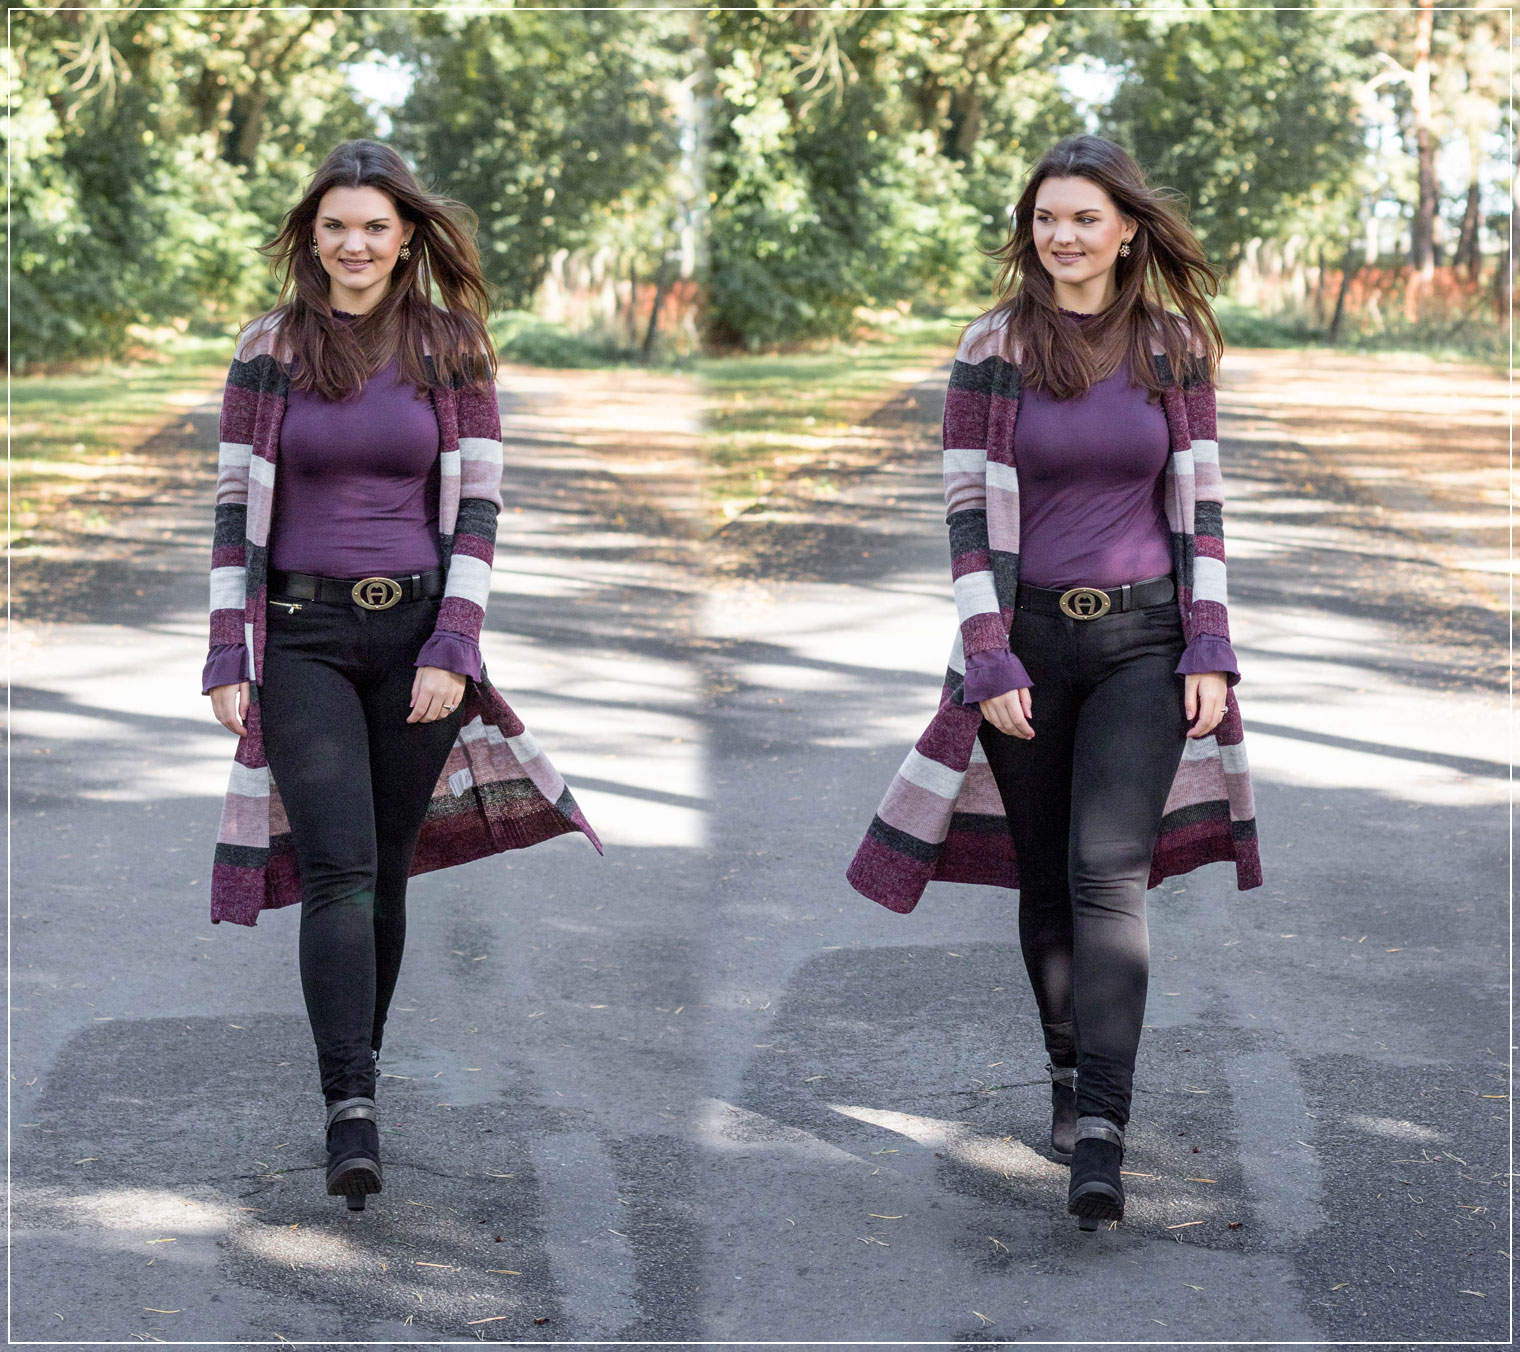 Herbsttrend, Long-Cardigan, Herbst-Essential, Jeans Fritz, Herbstoutfit, Herbstlook, Outfitinspiration, Autumnstyle, Abendoutfit, Modebloggerin, Fashionbloggerin, Modeblog, Ruhrgebiet